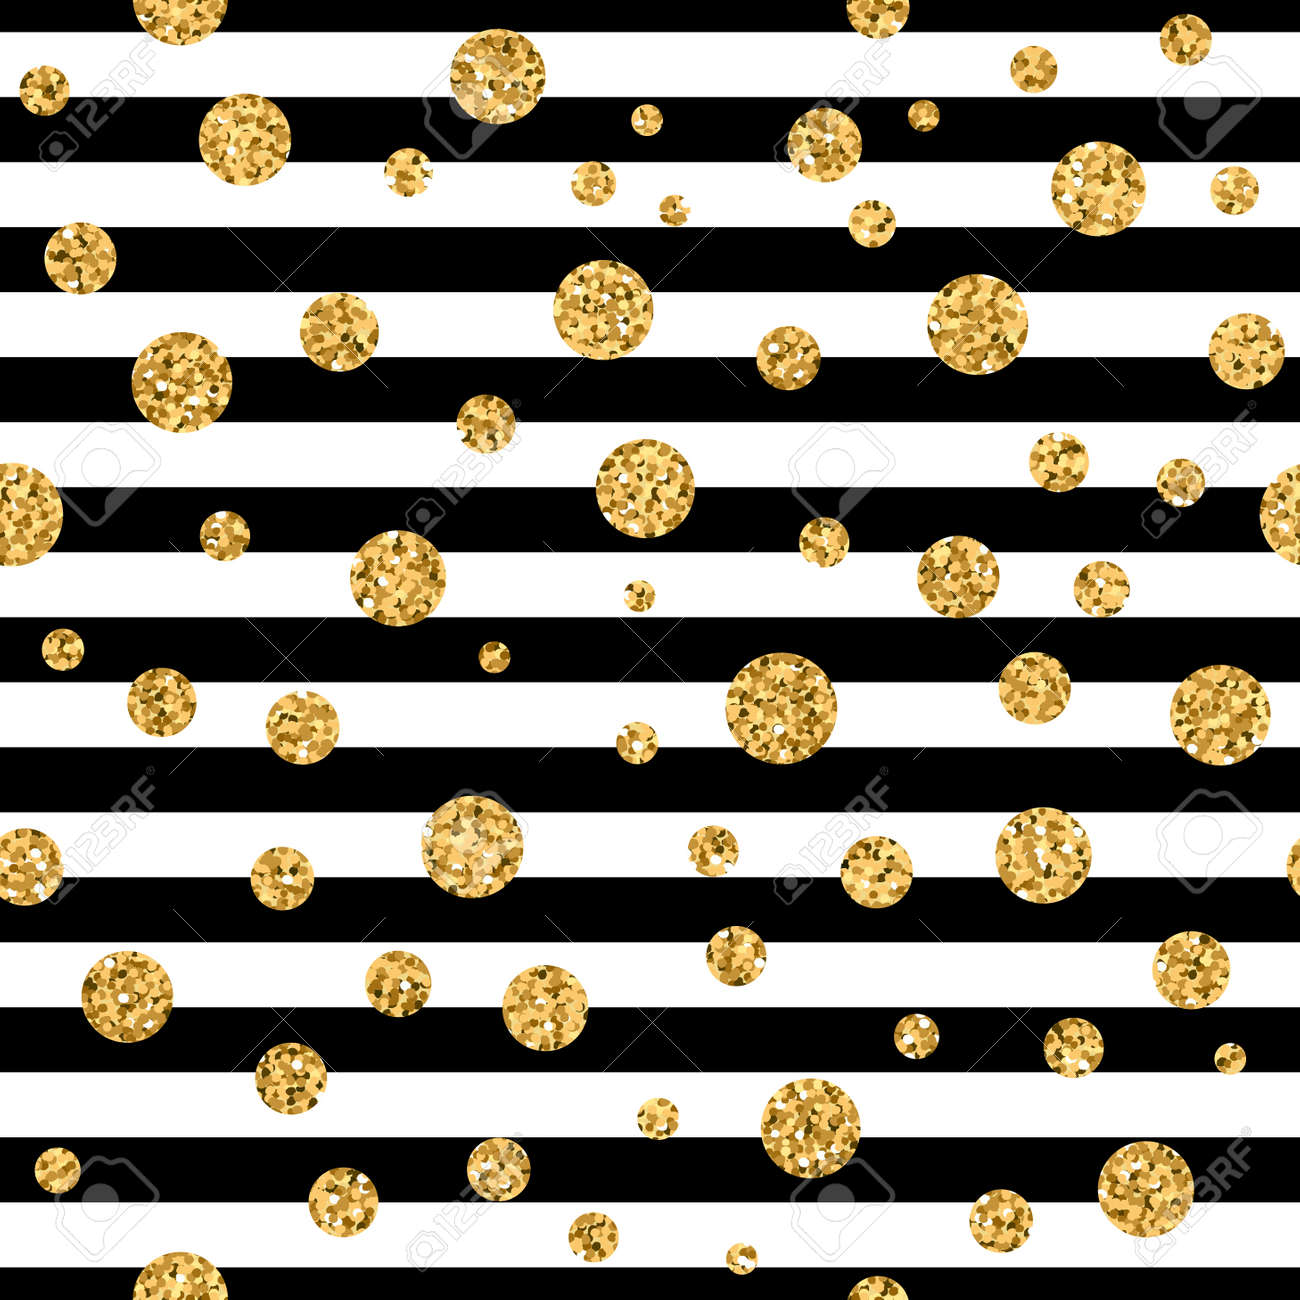 Gold Polka Dot On Lines Seamless Pattern Background Golden Foil Royalty Free Cliparts Vectors And Stock Illustration Image 66276973